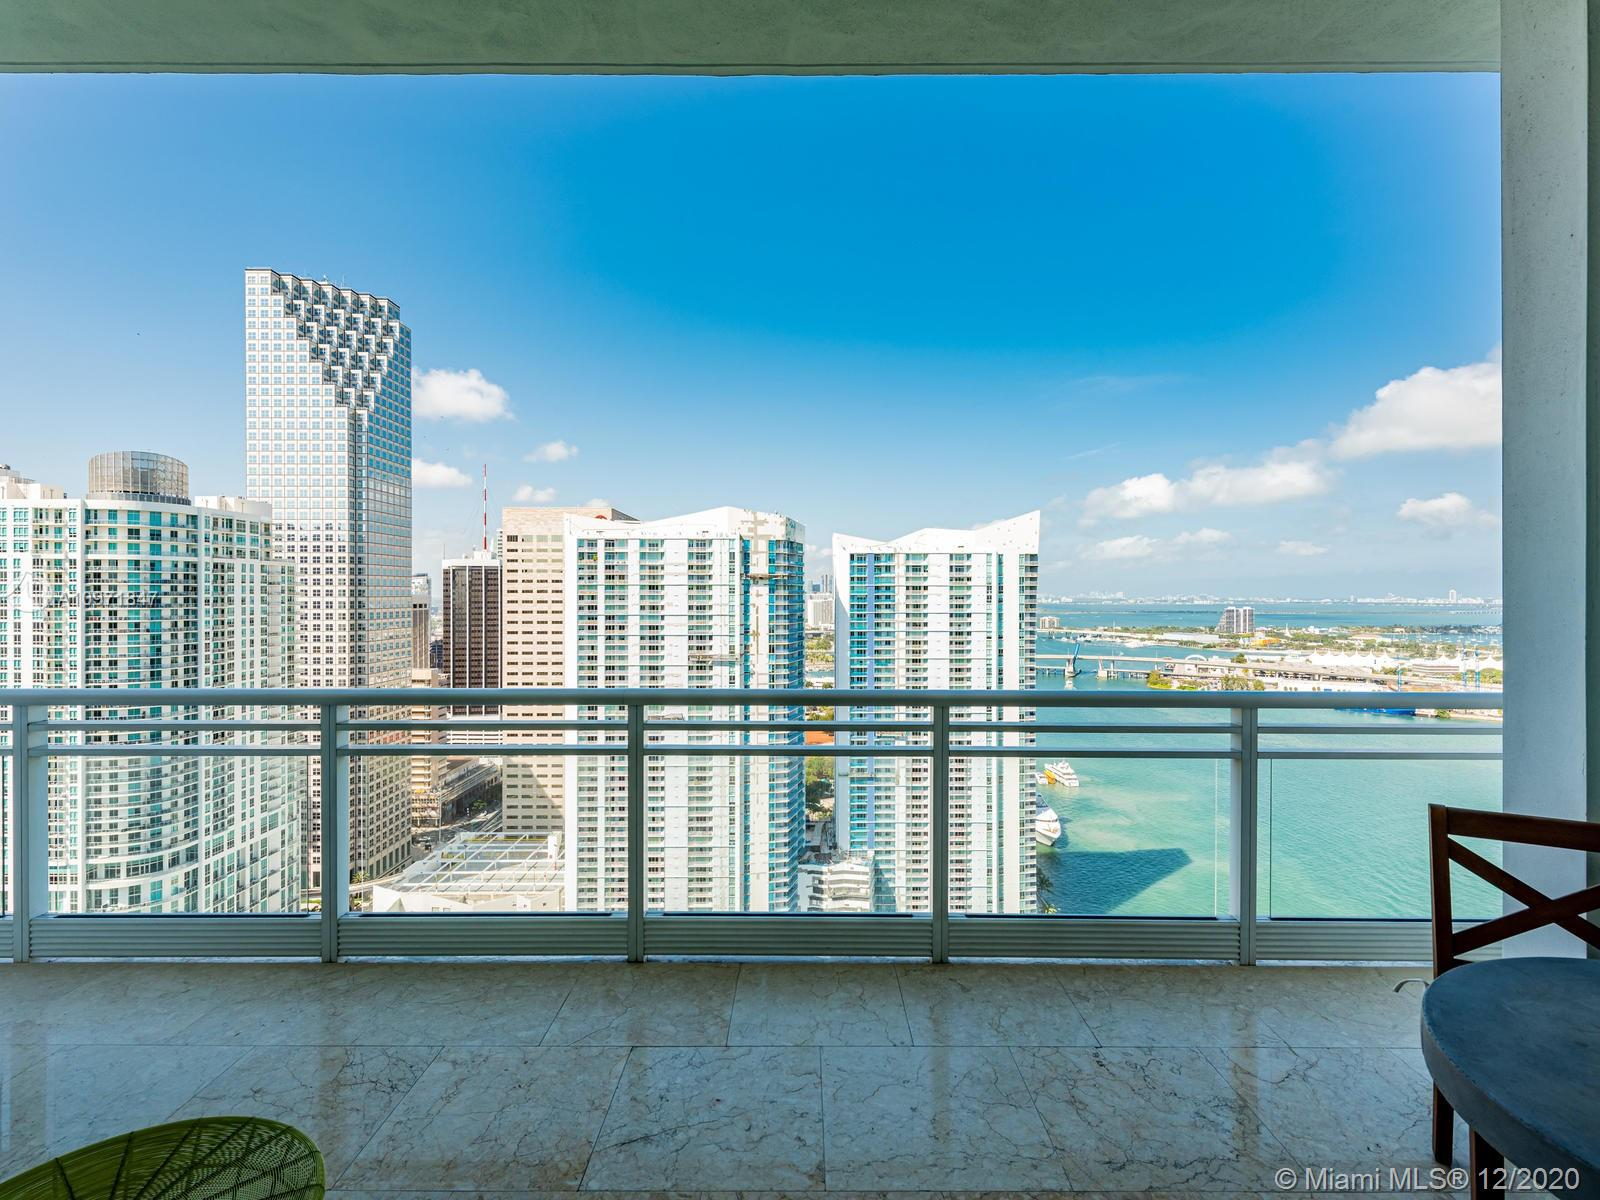 Impeccably upgraded unit at the iconic Asia on Brickell Key. 2 beds, 2.5 baths, private elevator, 12' floor to ceiling windows throughout, breath-taking water & city views from balcony, highest quality finishes, high-end wall coverings, custom made doors, gourmet kitchen w integrated wine cooler, built in espresso machine, top of line granite, custom-made closets, lighting fixtures & soffits throughout, & storage space in same floor. Building offers luxury amenities: wellness center, pool, gym, racquet ball and tennis courts, 24hr concierge service, valet parking and more!